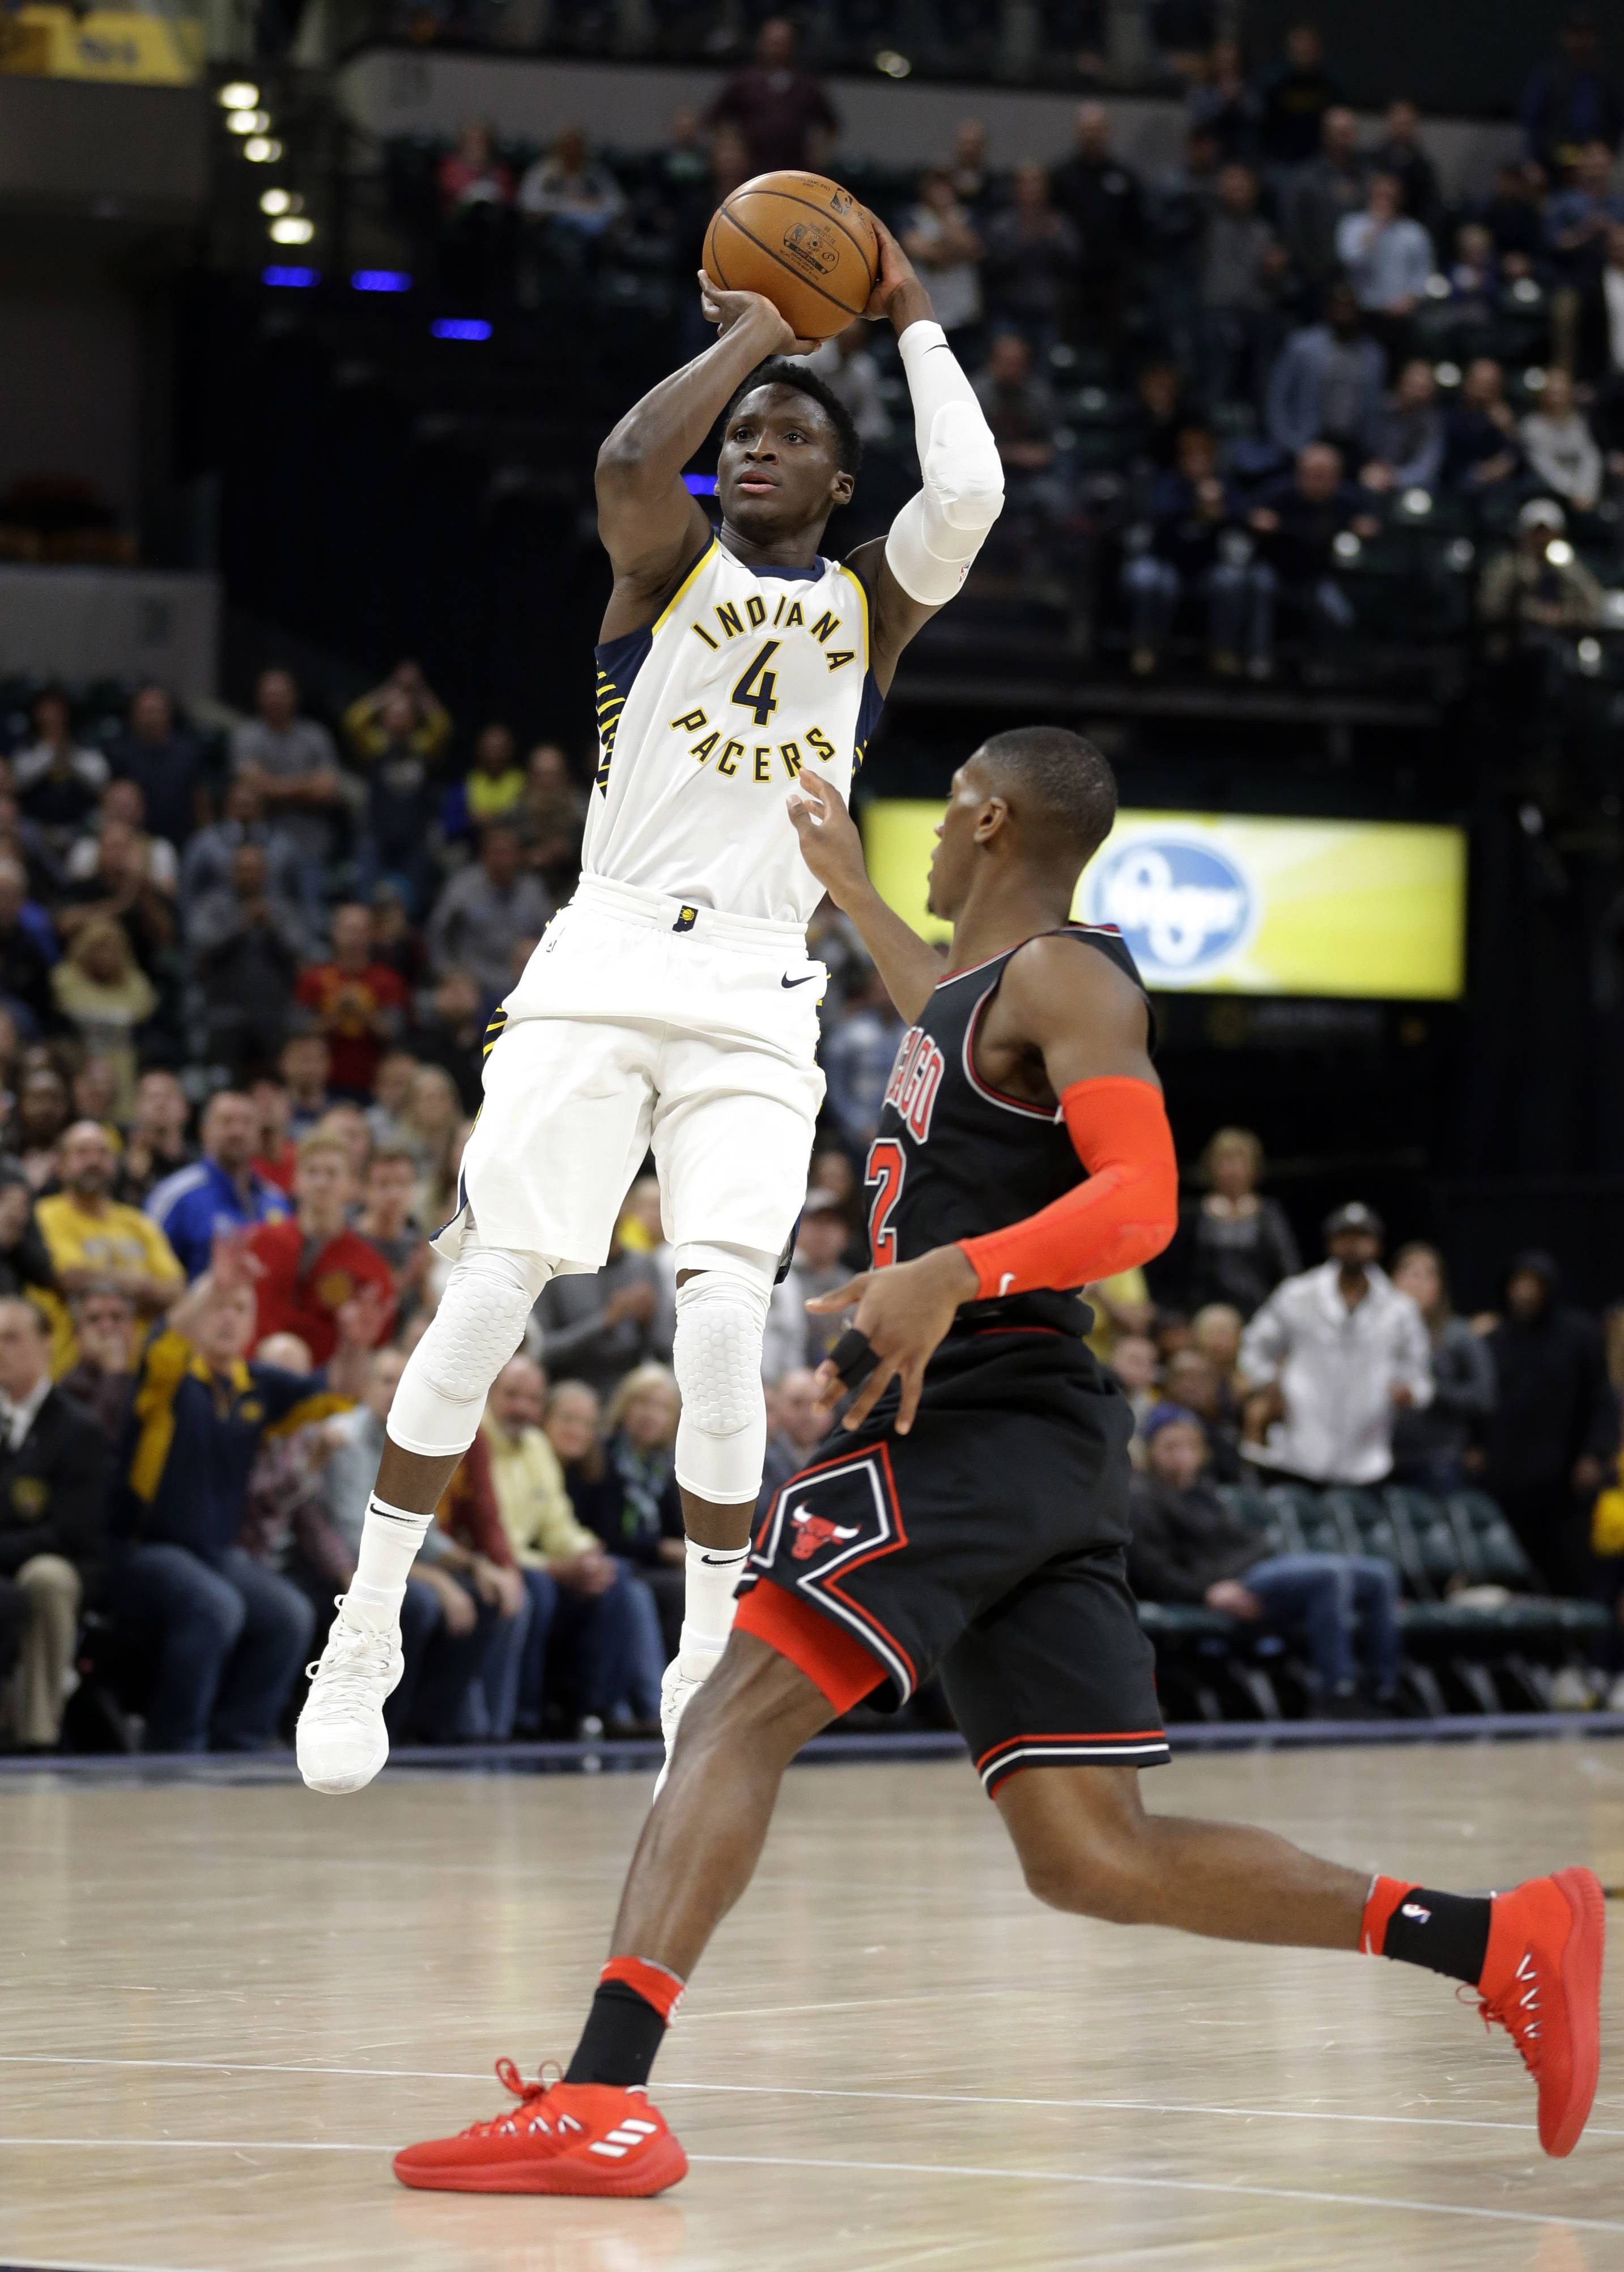 Oladipo leads Pacers to big comeback win over Chicago Bulls